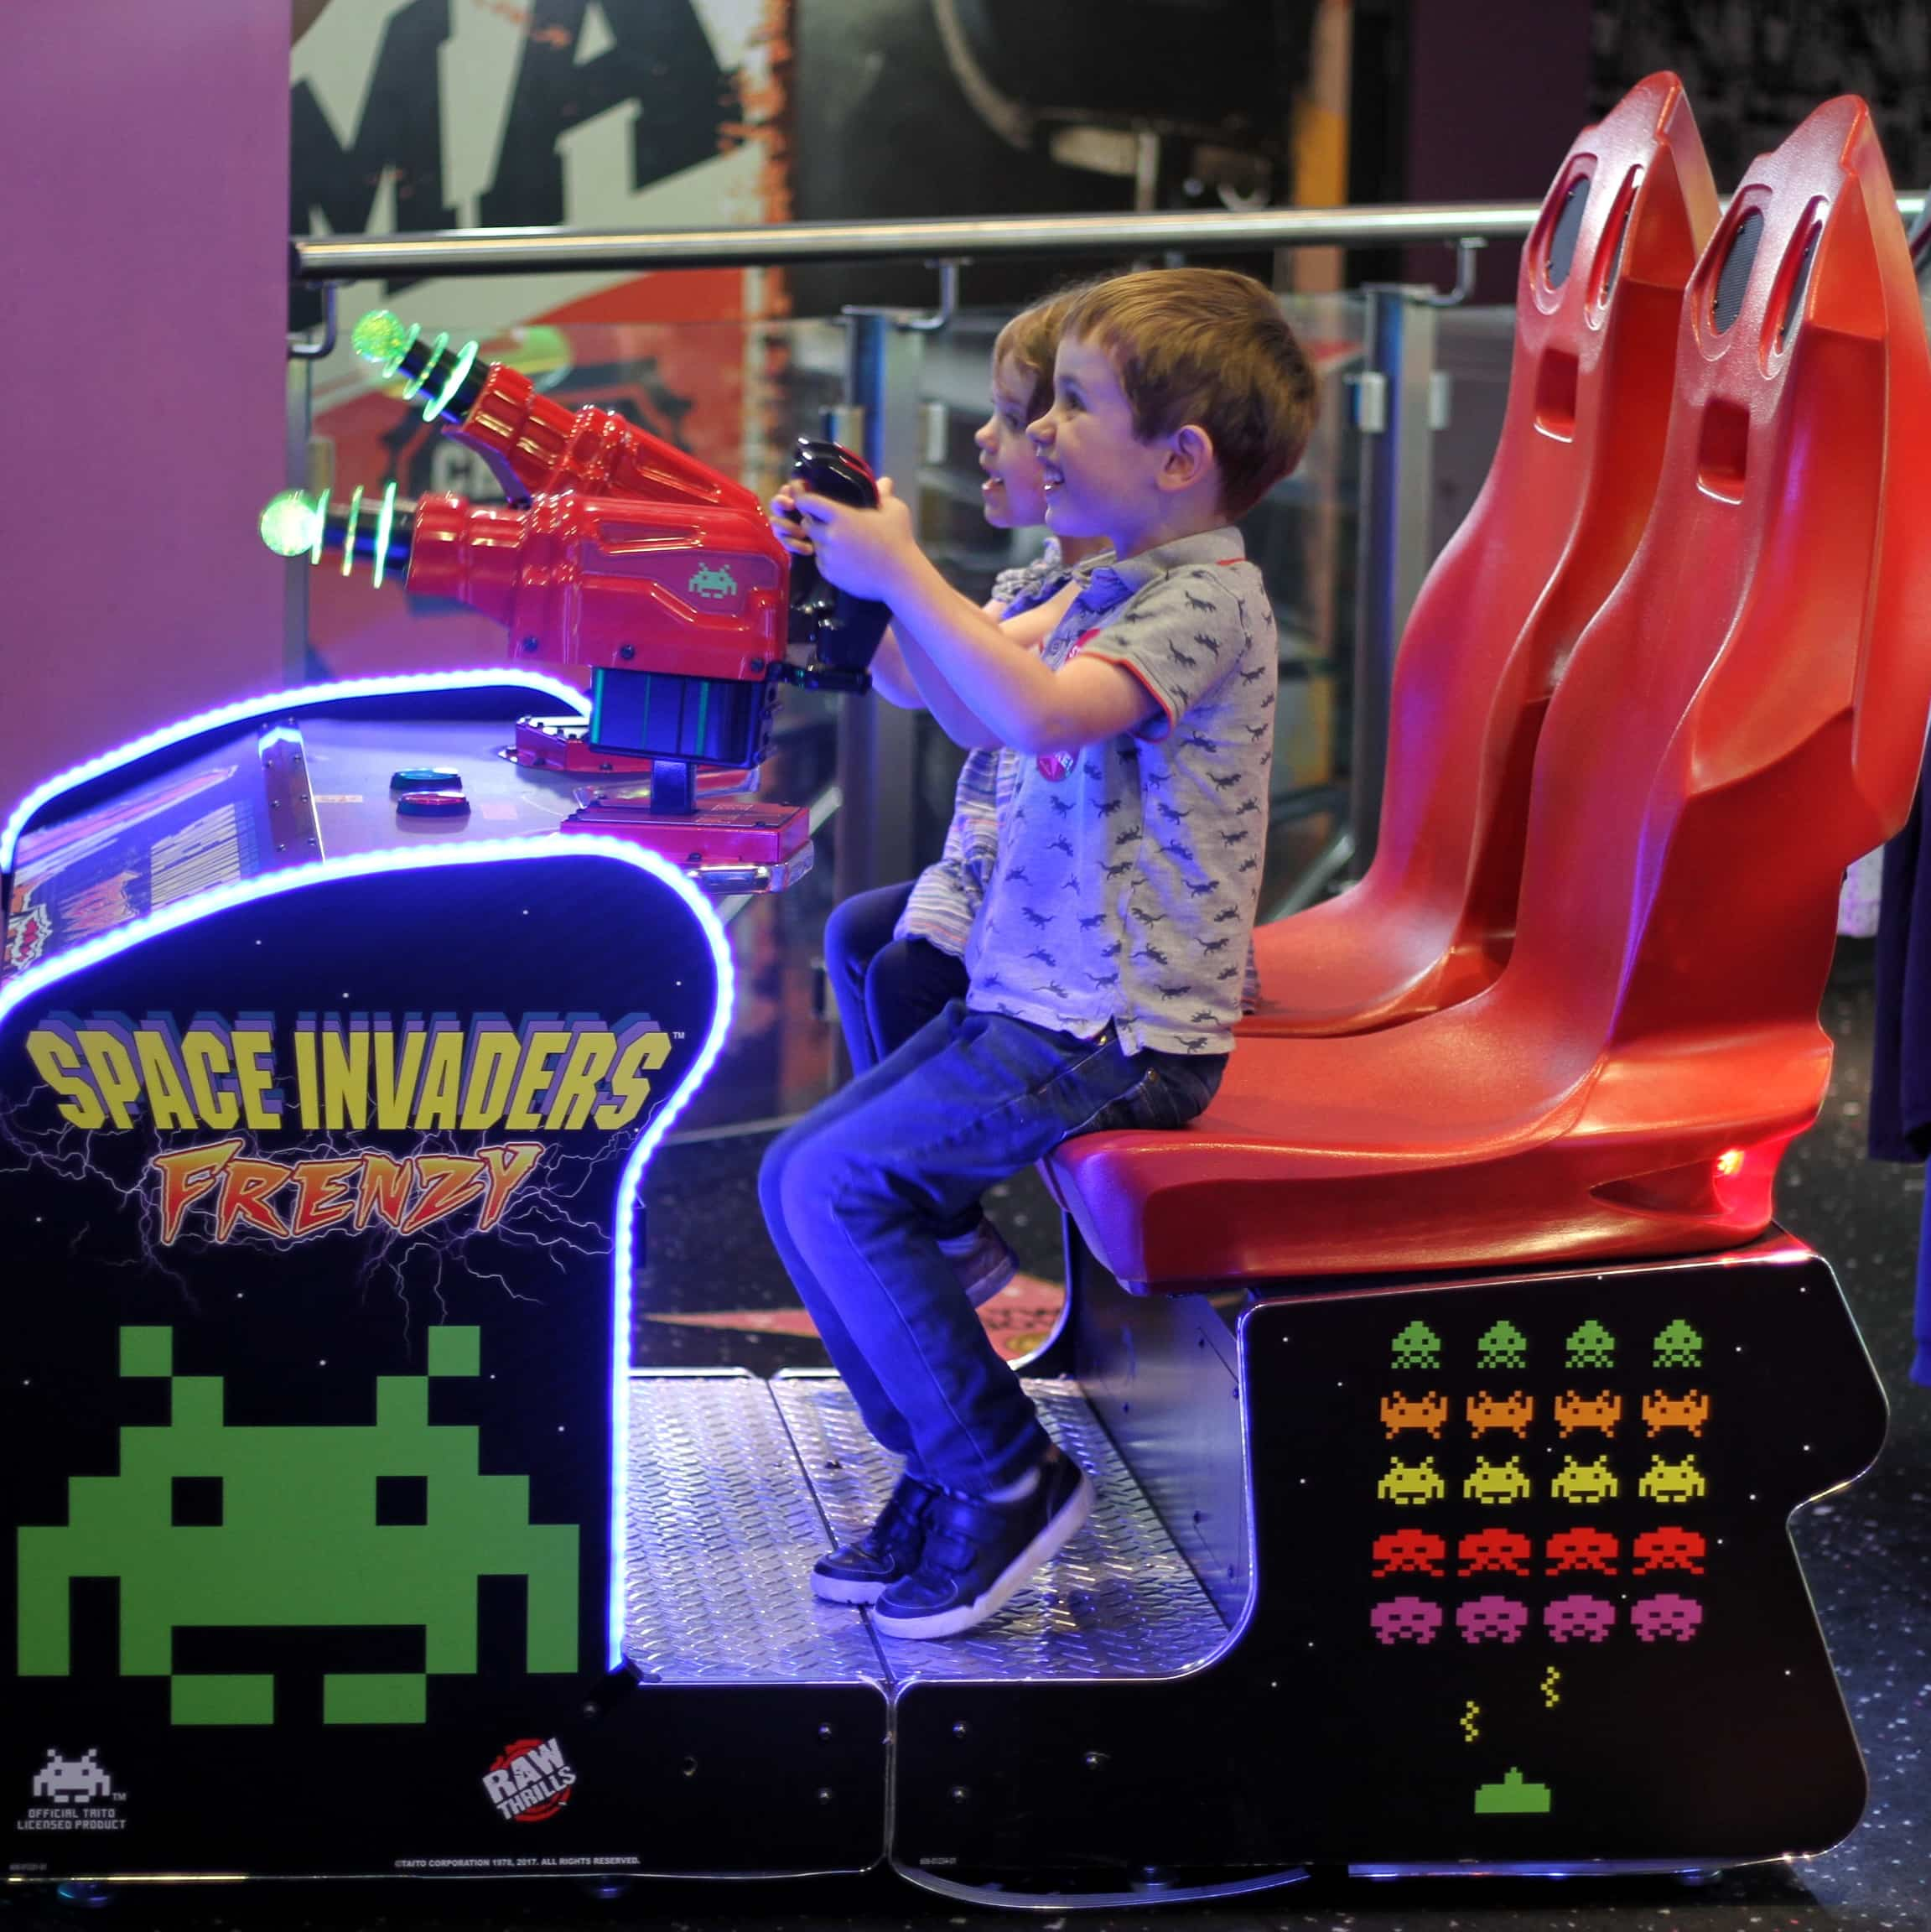 Biggest and Littlesy playing Space Invaders